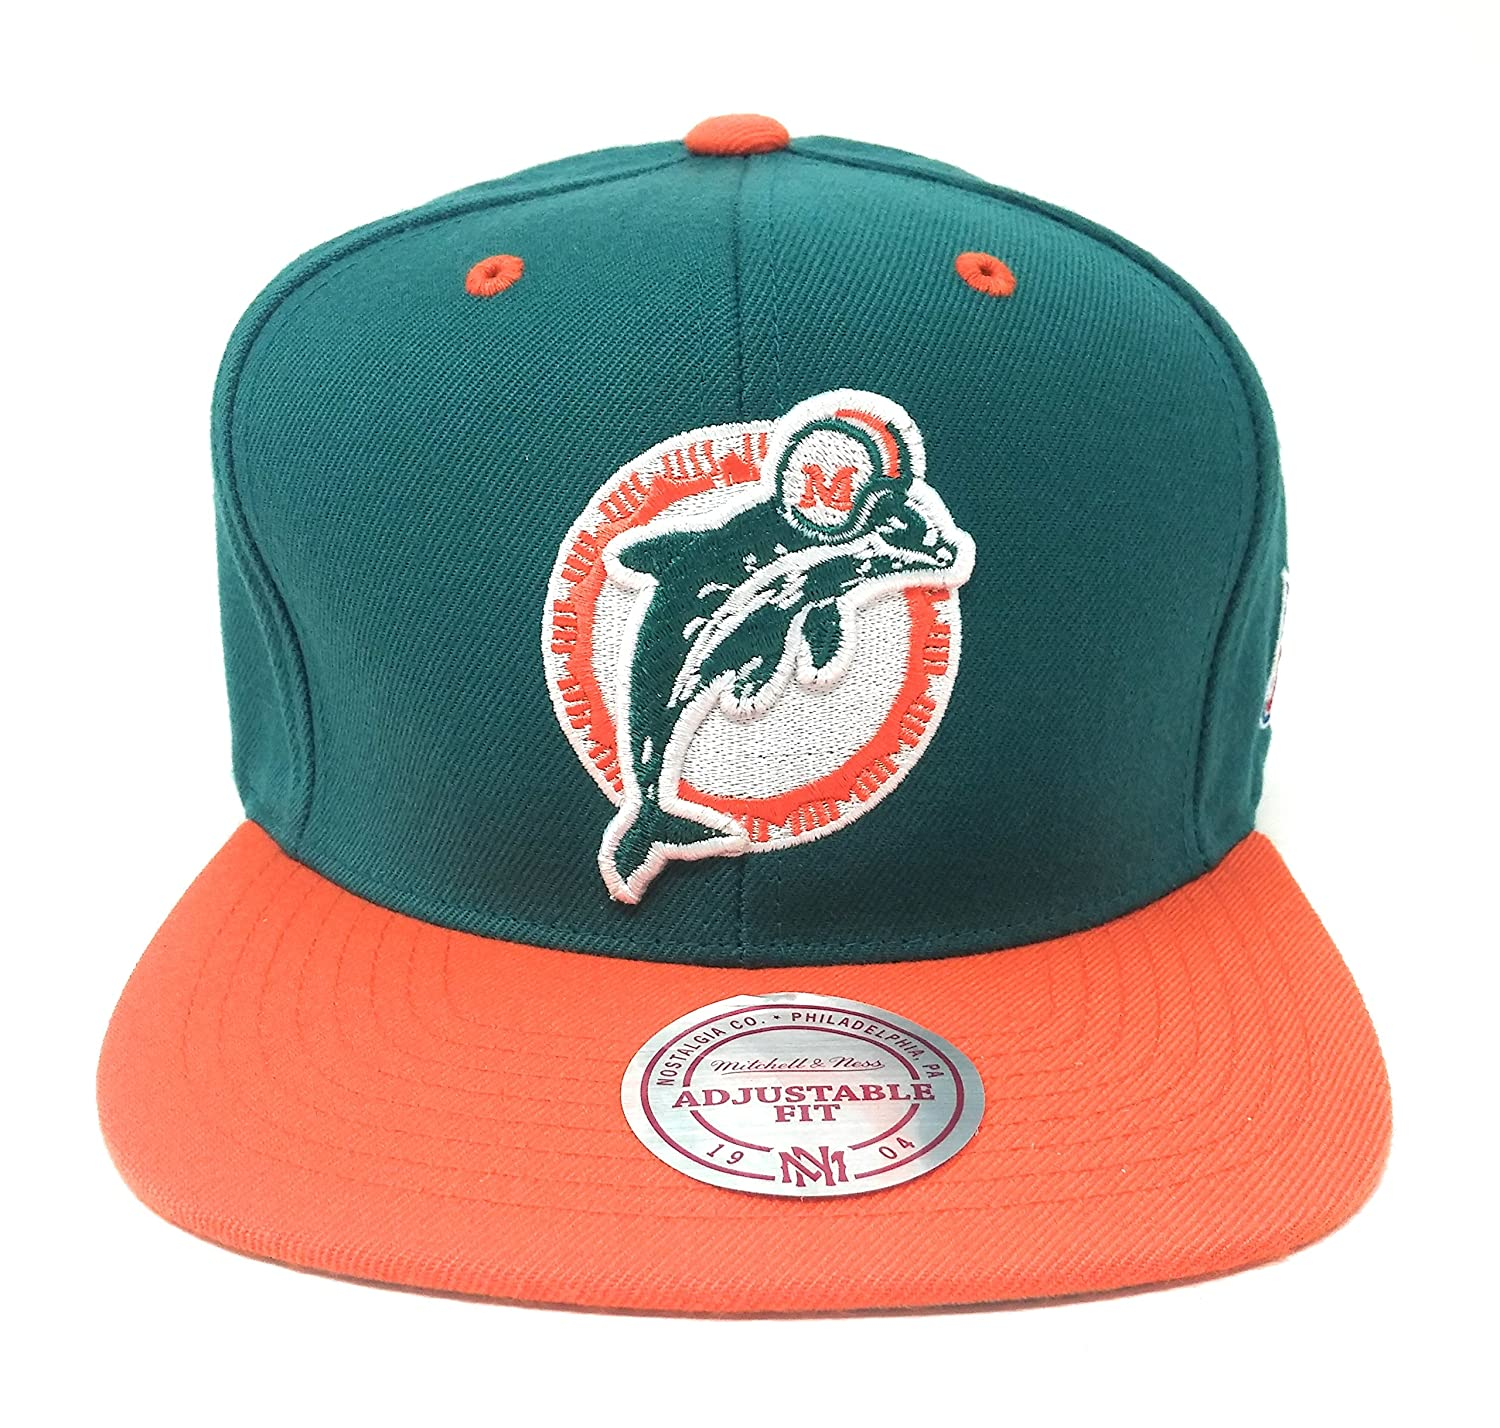 503d0eb3c91e0 Amazon.com   Mitchell And Ness Sta3 Retro Miami Dolphins Snapback Hat Teal.  Size  Sports Fan Baseball Caps   Sports   Outdoors